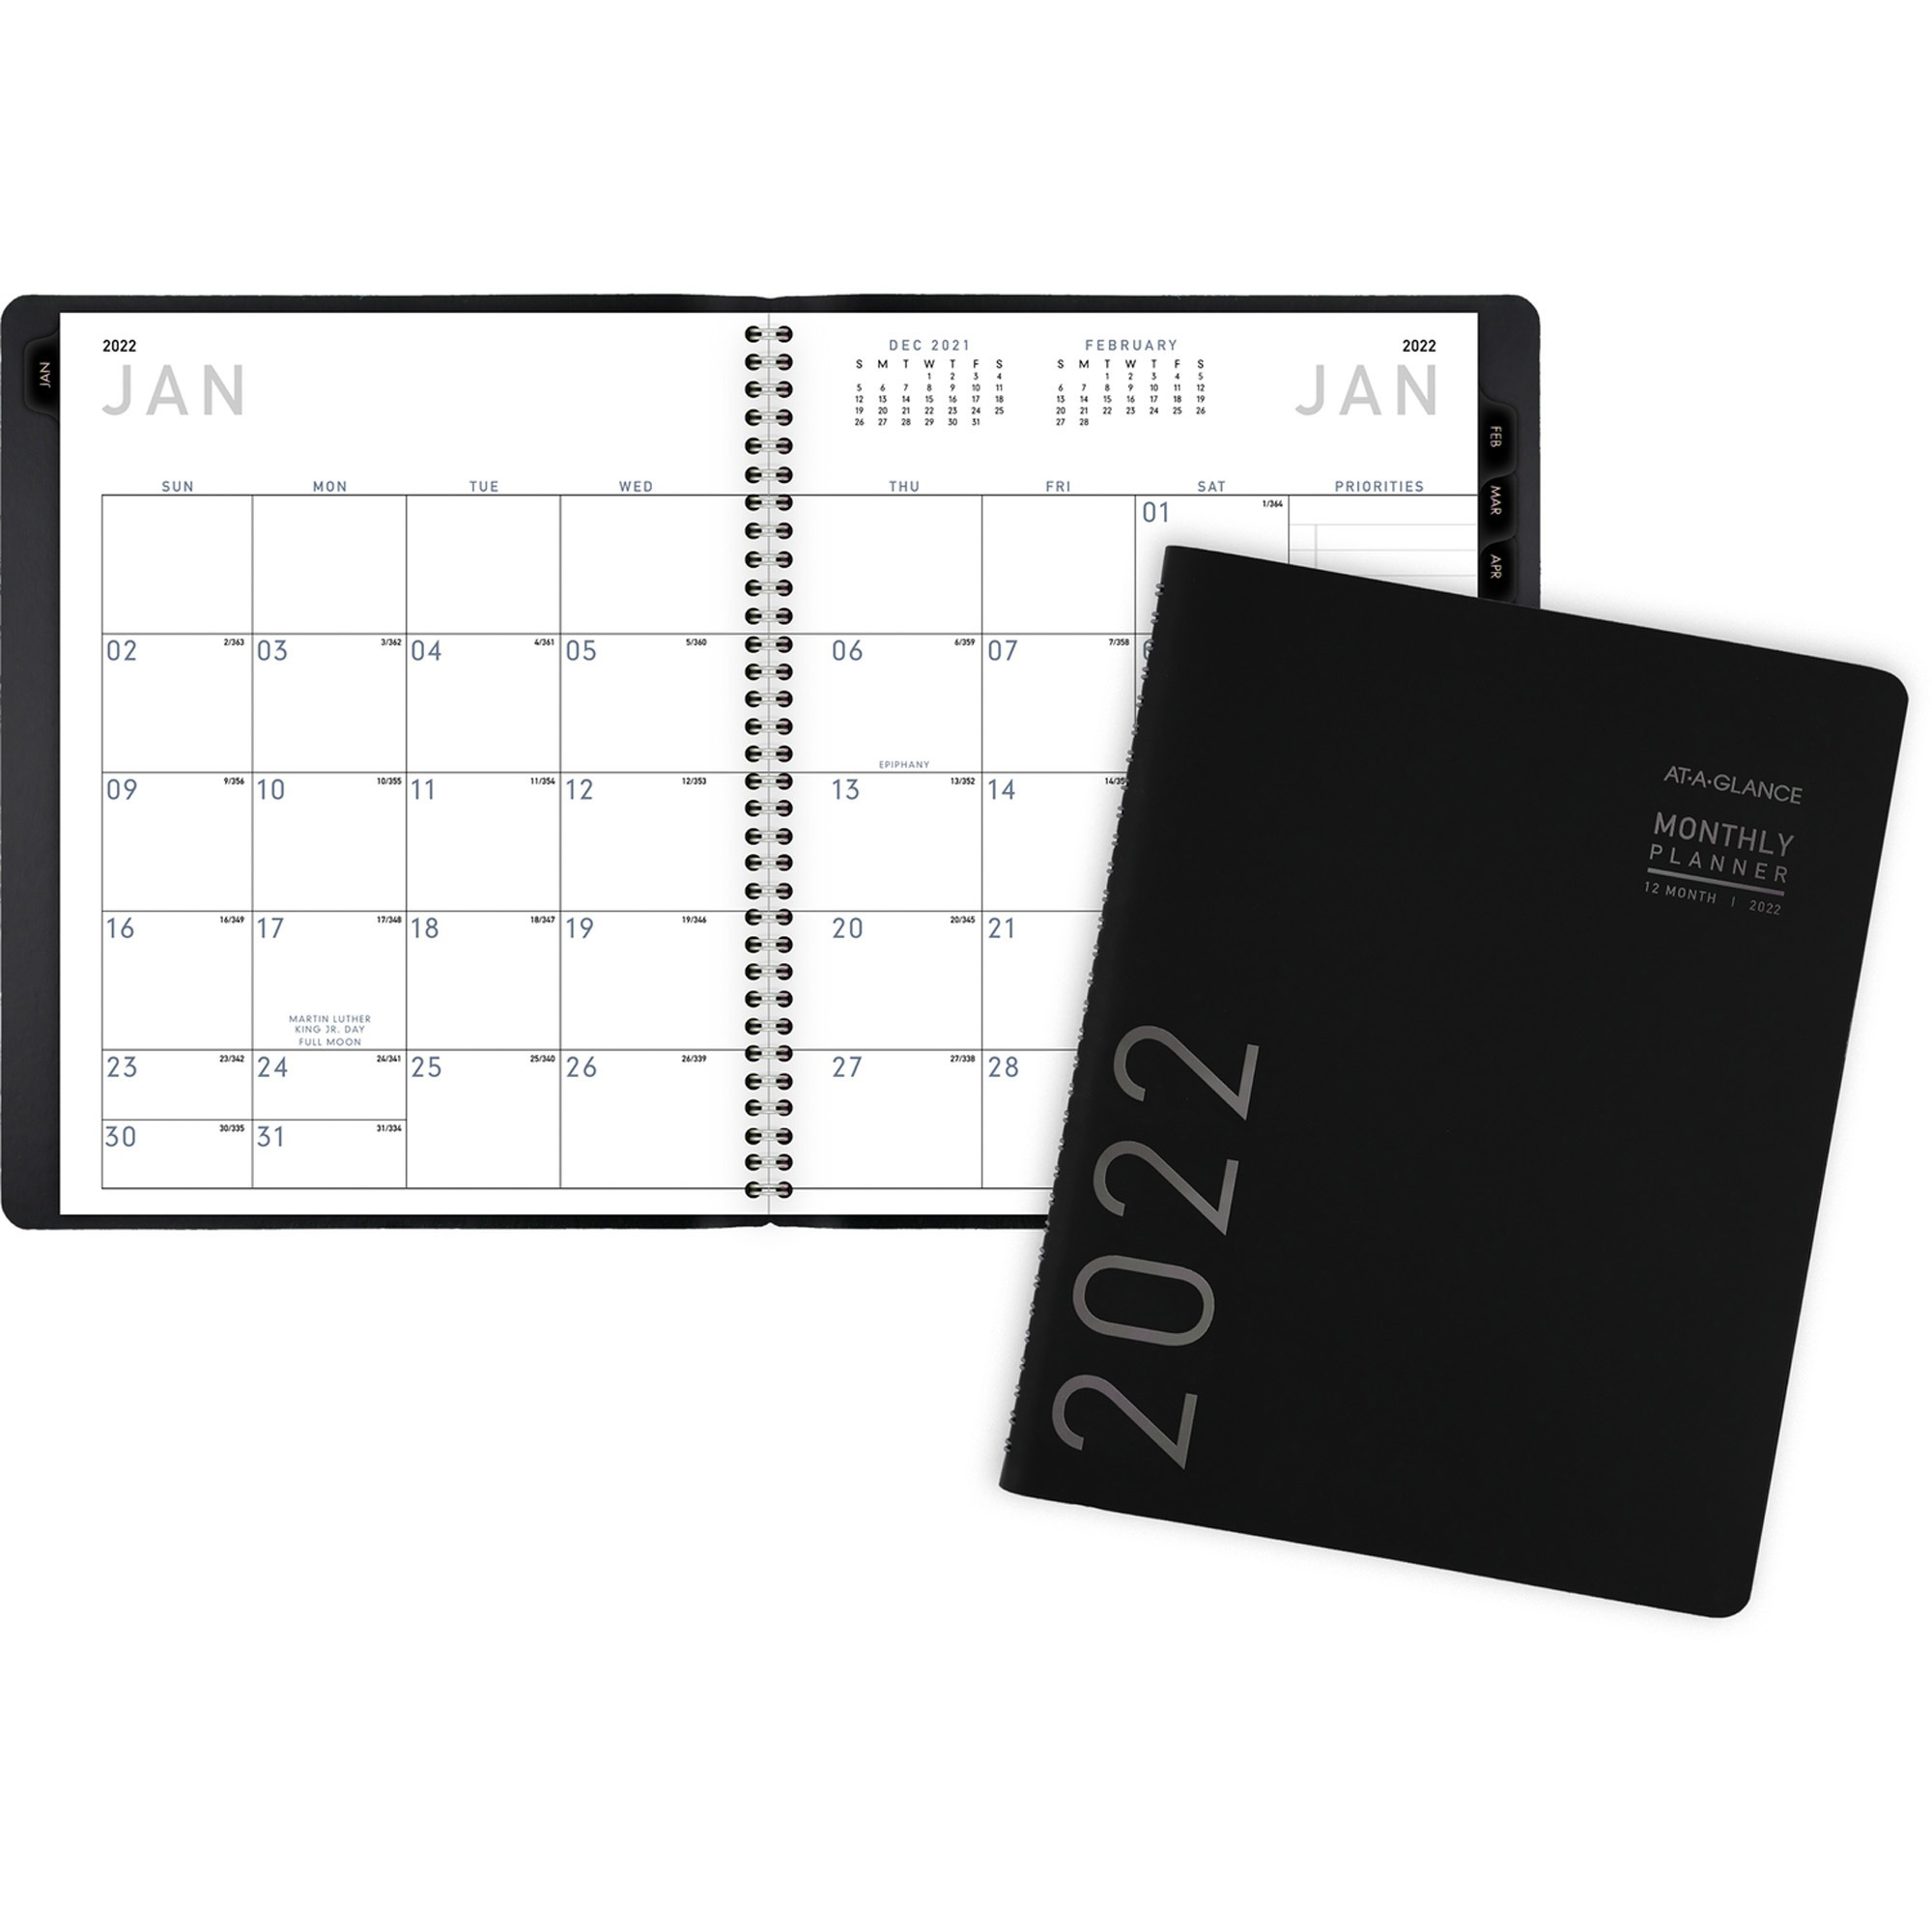 At-A-Glance Contemporary Monthly Planner - Yes - Monthly - 1 Year - January 2020 till December 2020 - 1 Month Double Page Layout - 6 7/8